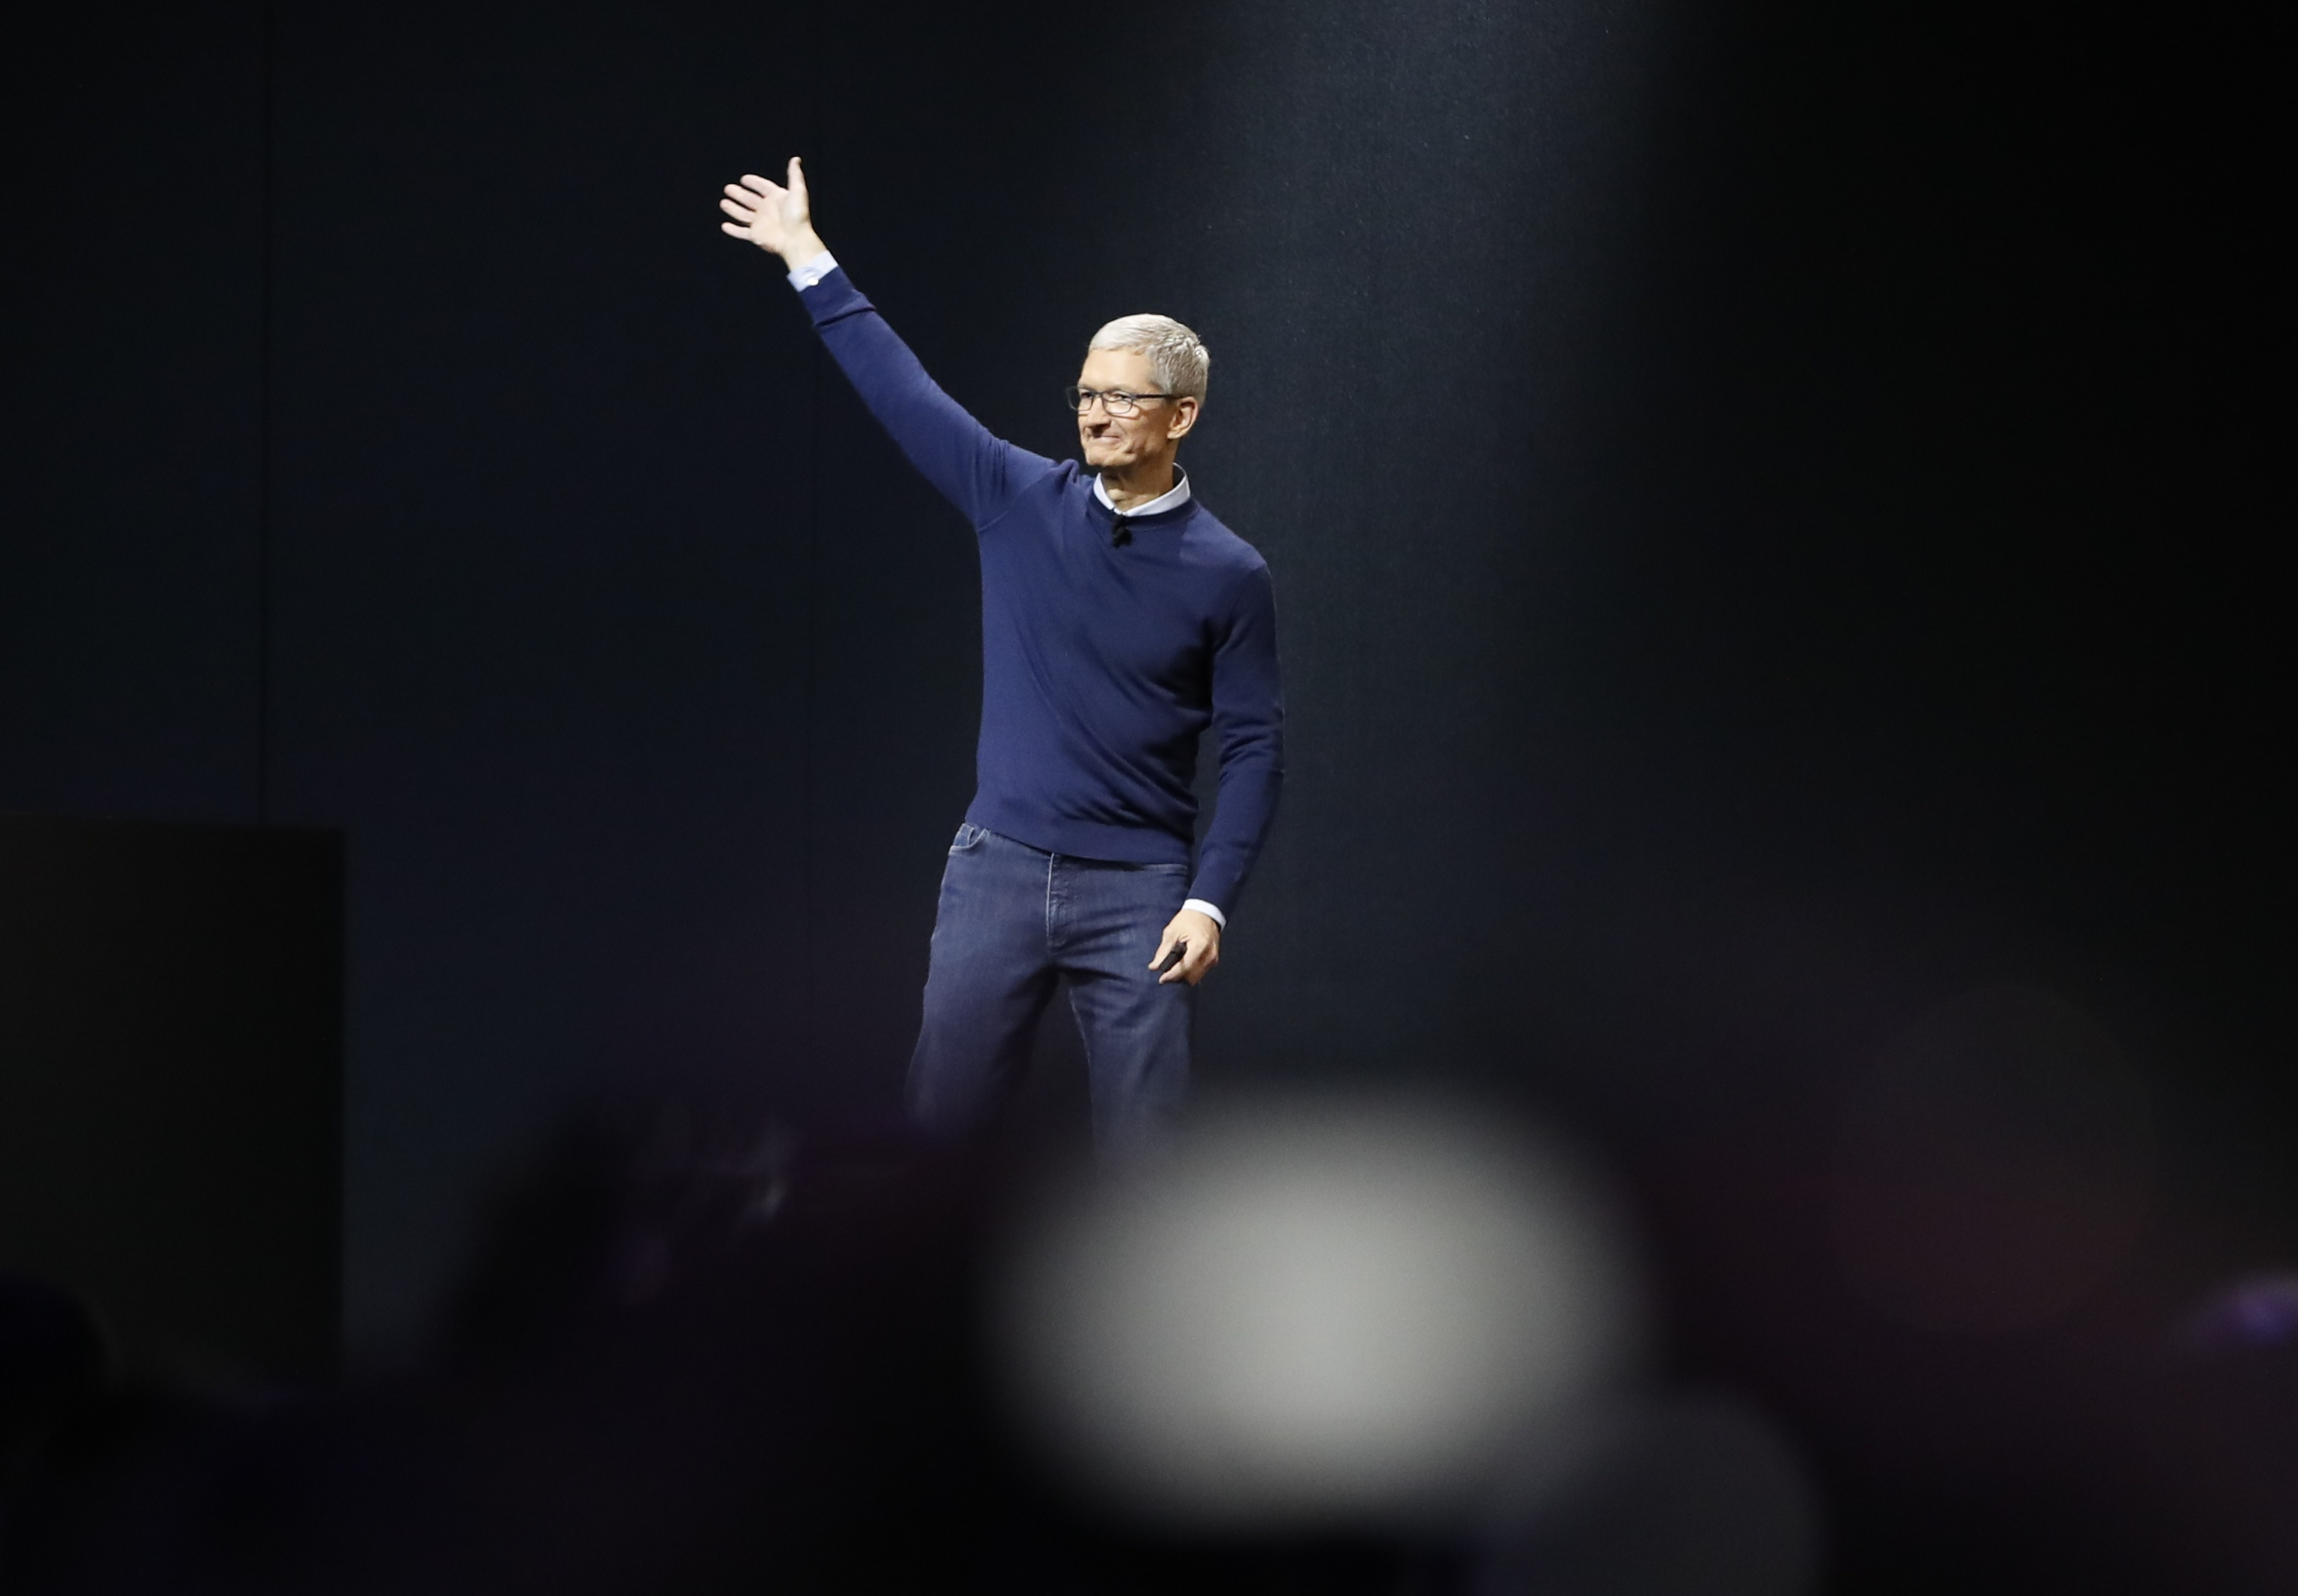 Tim Cook waves during Apple's annual developer conference in San Jose